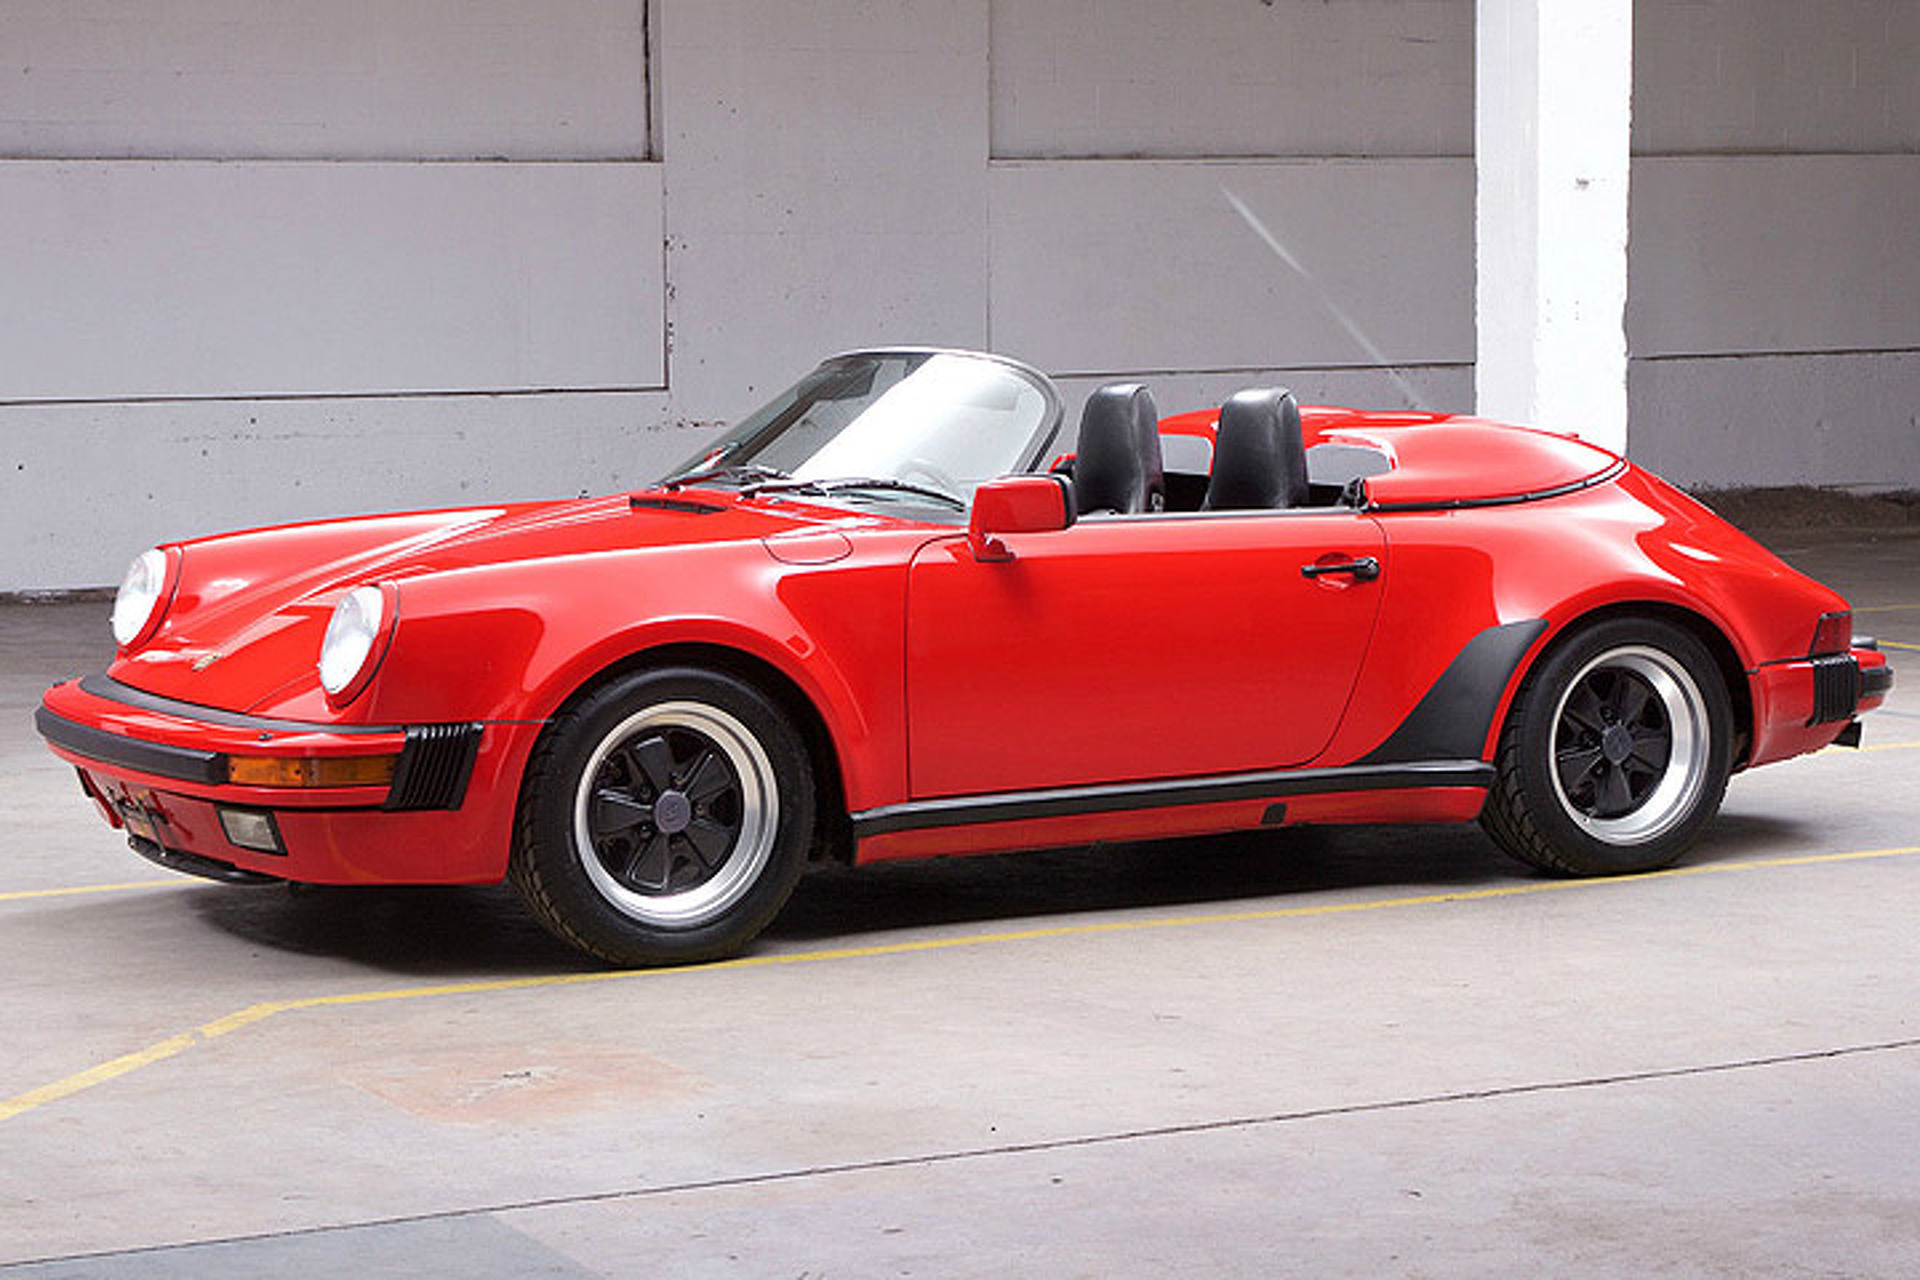 The 1989 Porsche Sdster is a Beauty, 30 Years in the Making